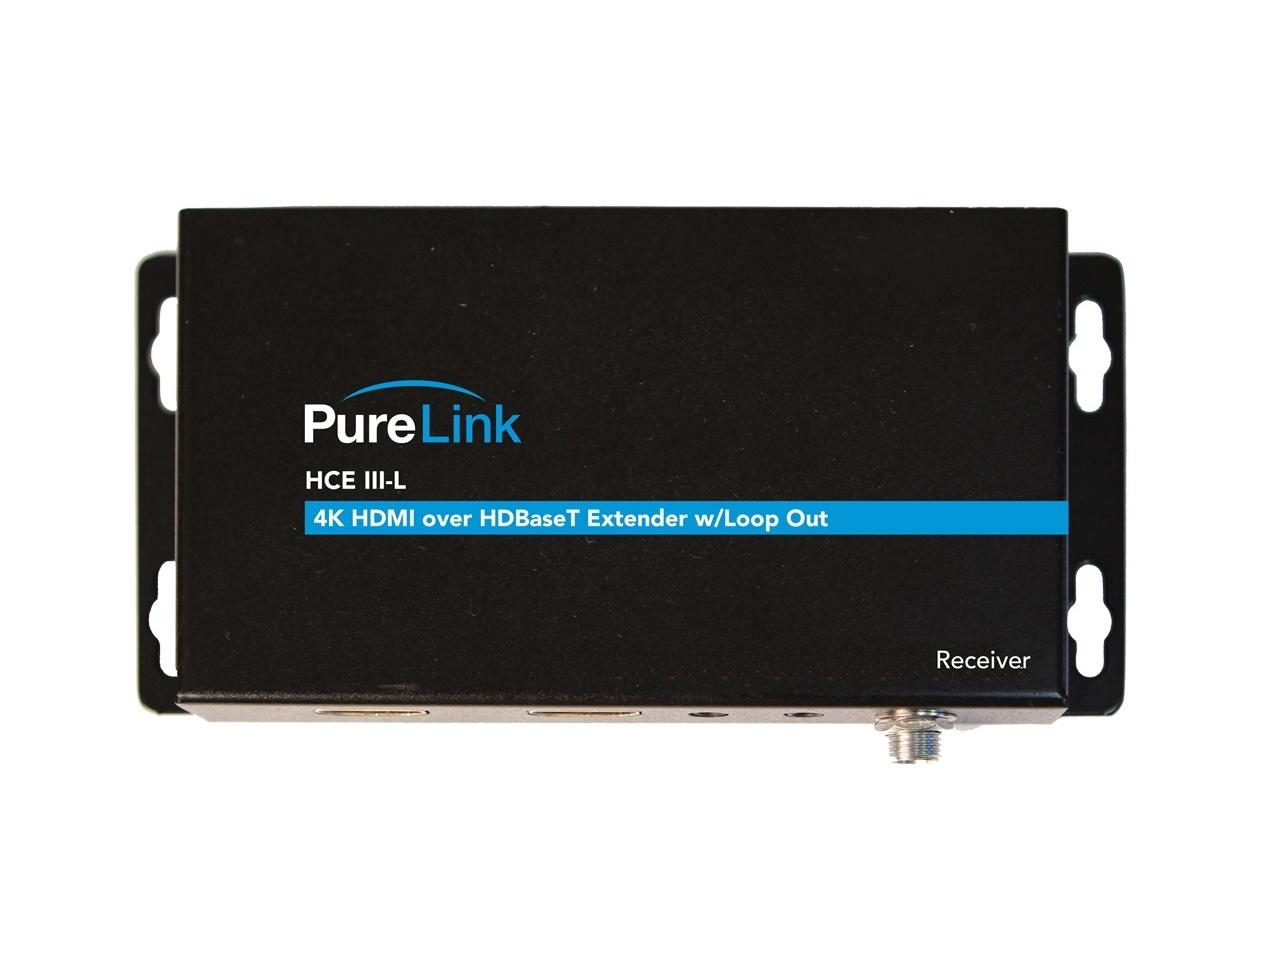 PureLink HCE III-L Rx HDTools 4K HDMI/HDR/IR and RS-232/Bi-directional PoE over HDBaseT Extender (Receiver)